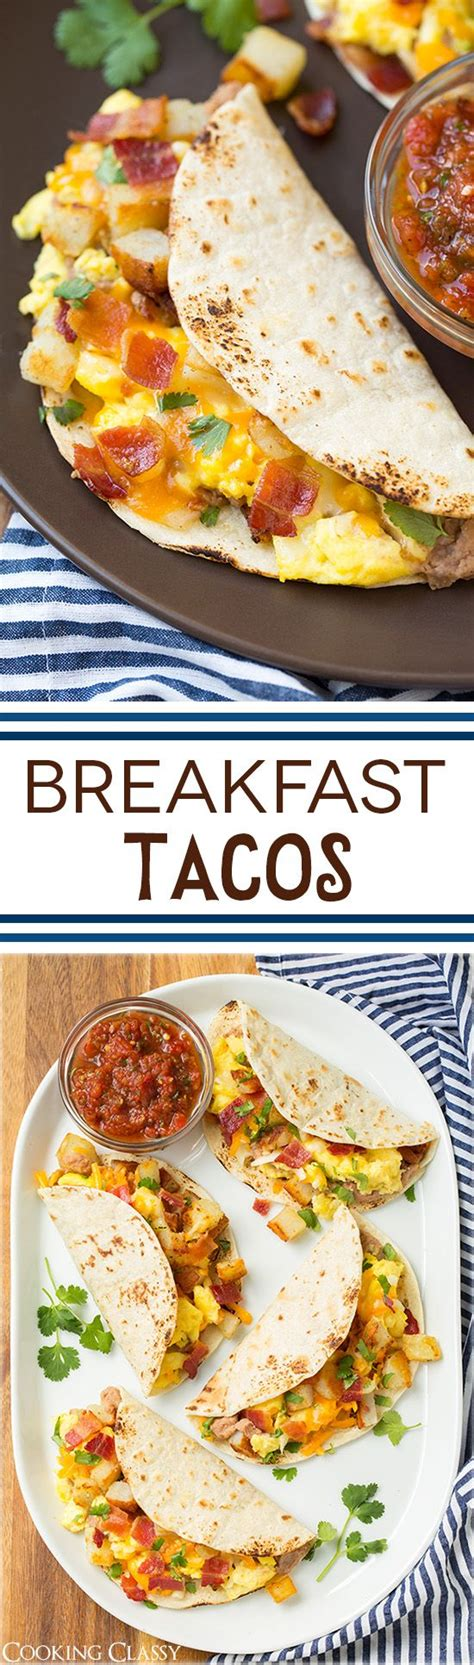 comfort food breakfast breakfast tacos with fire roasted tomato salsa